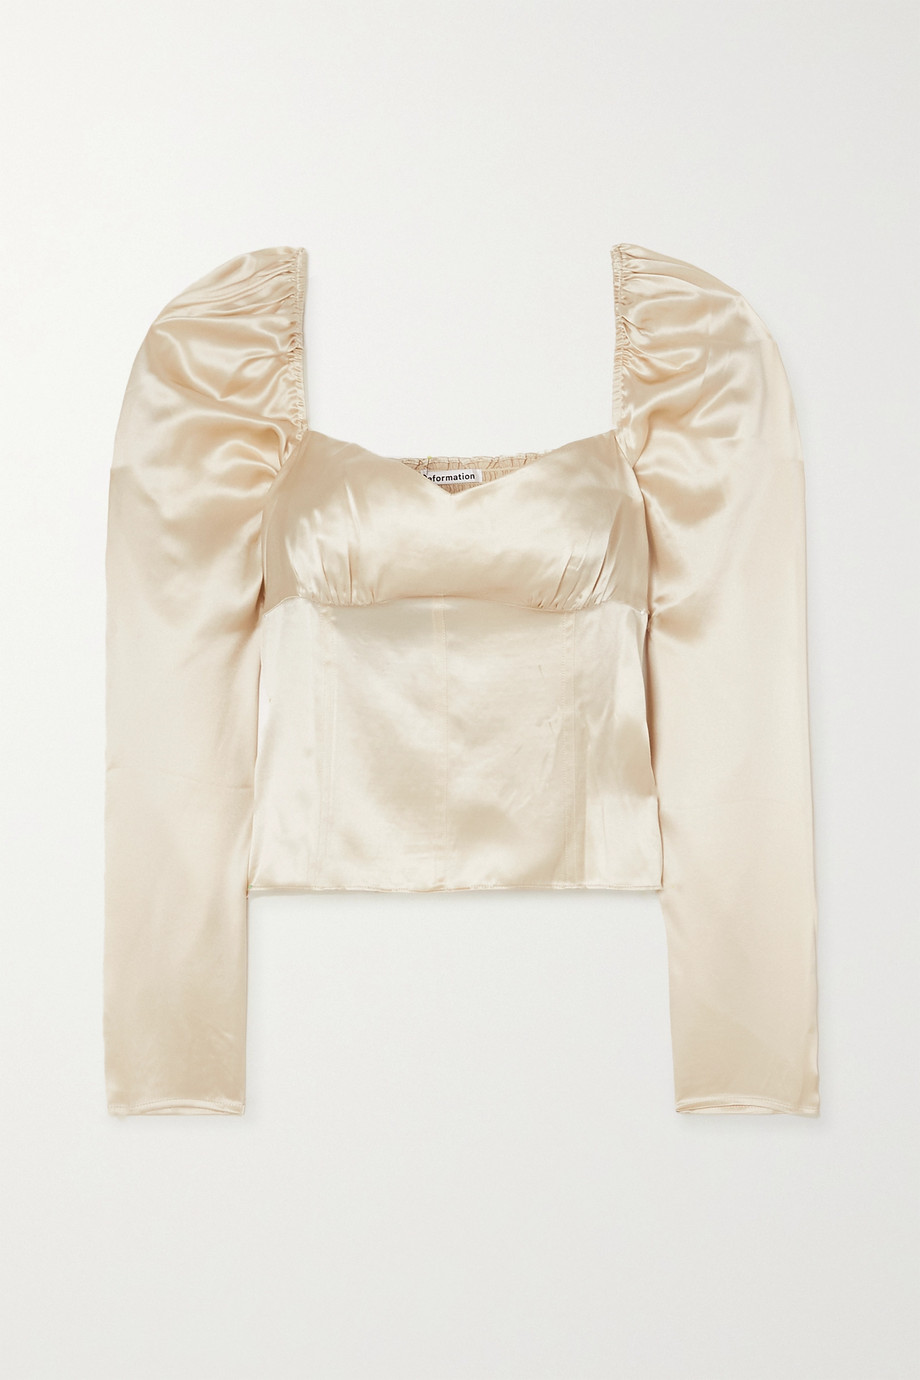 Reformation Roe shirred silk-satin top